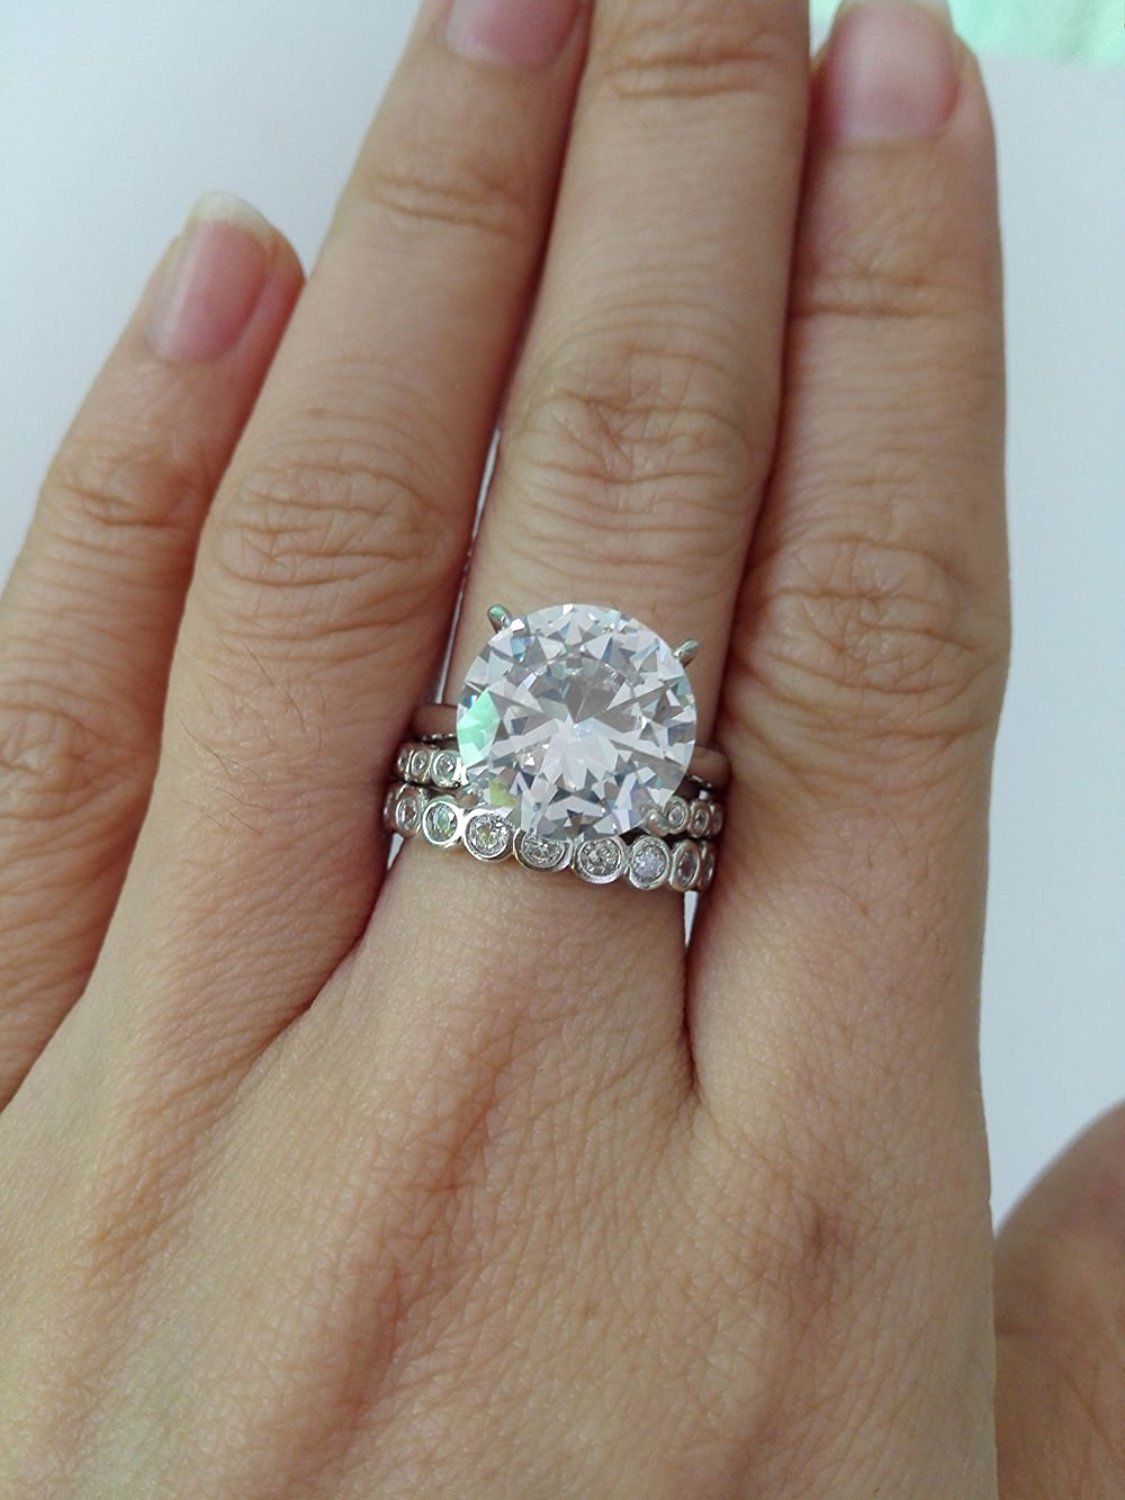 This ring set is absolutely stunning. The engagement ring